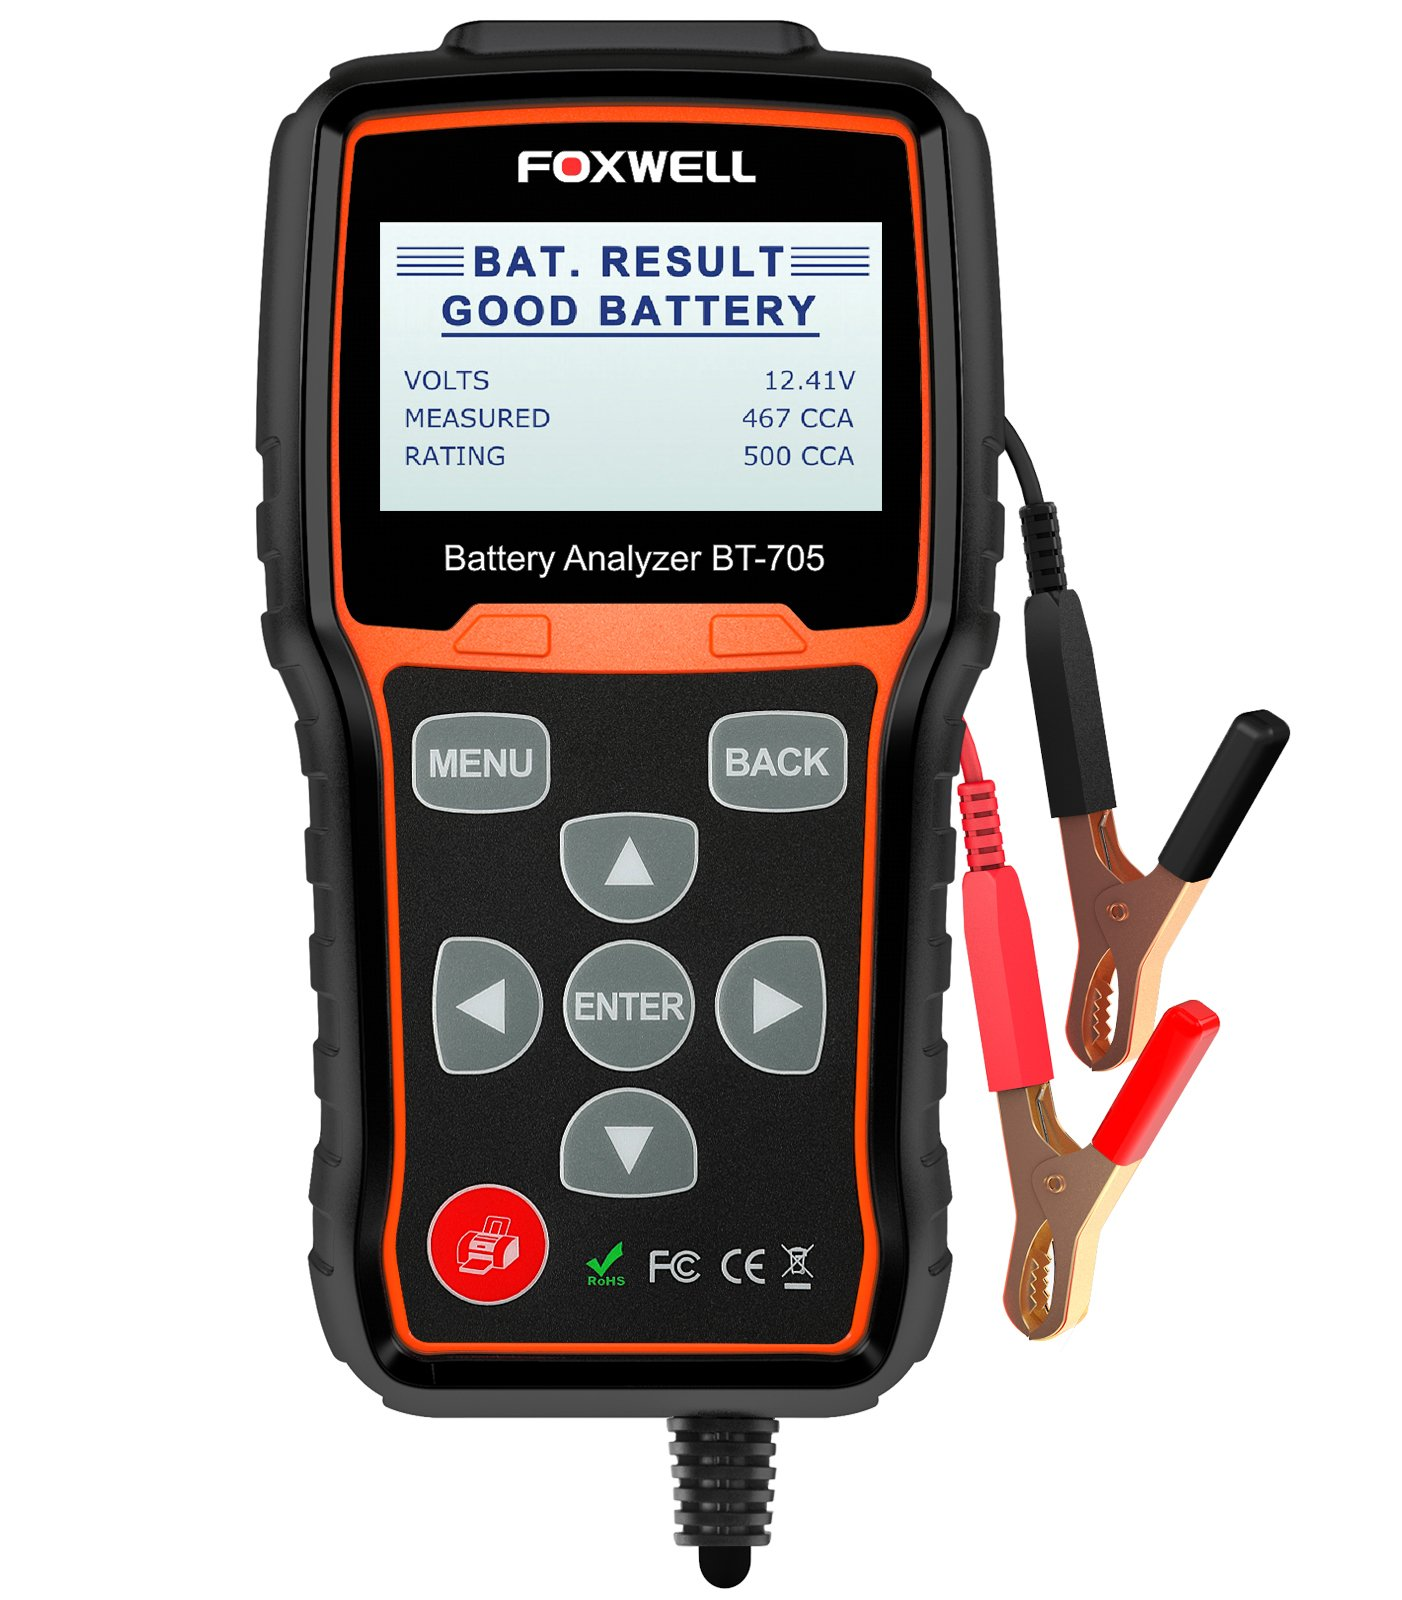 FOXWELL Battery Tester BT705 Automotive 100-2000 CCA Battery Load Tester 12V 24V Car Cranking and Charging System Test Tool Digital Battery Analyzer for Cars and Heavy Duty Trucks by FOXWELL (Image #2)